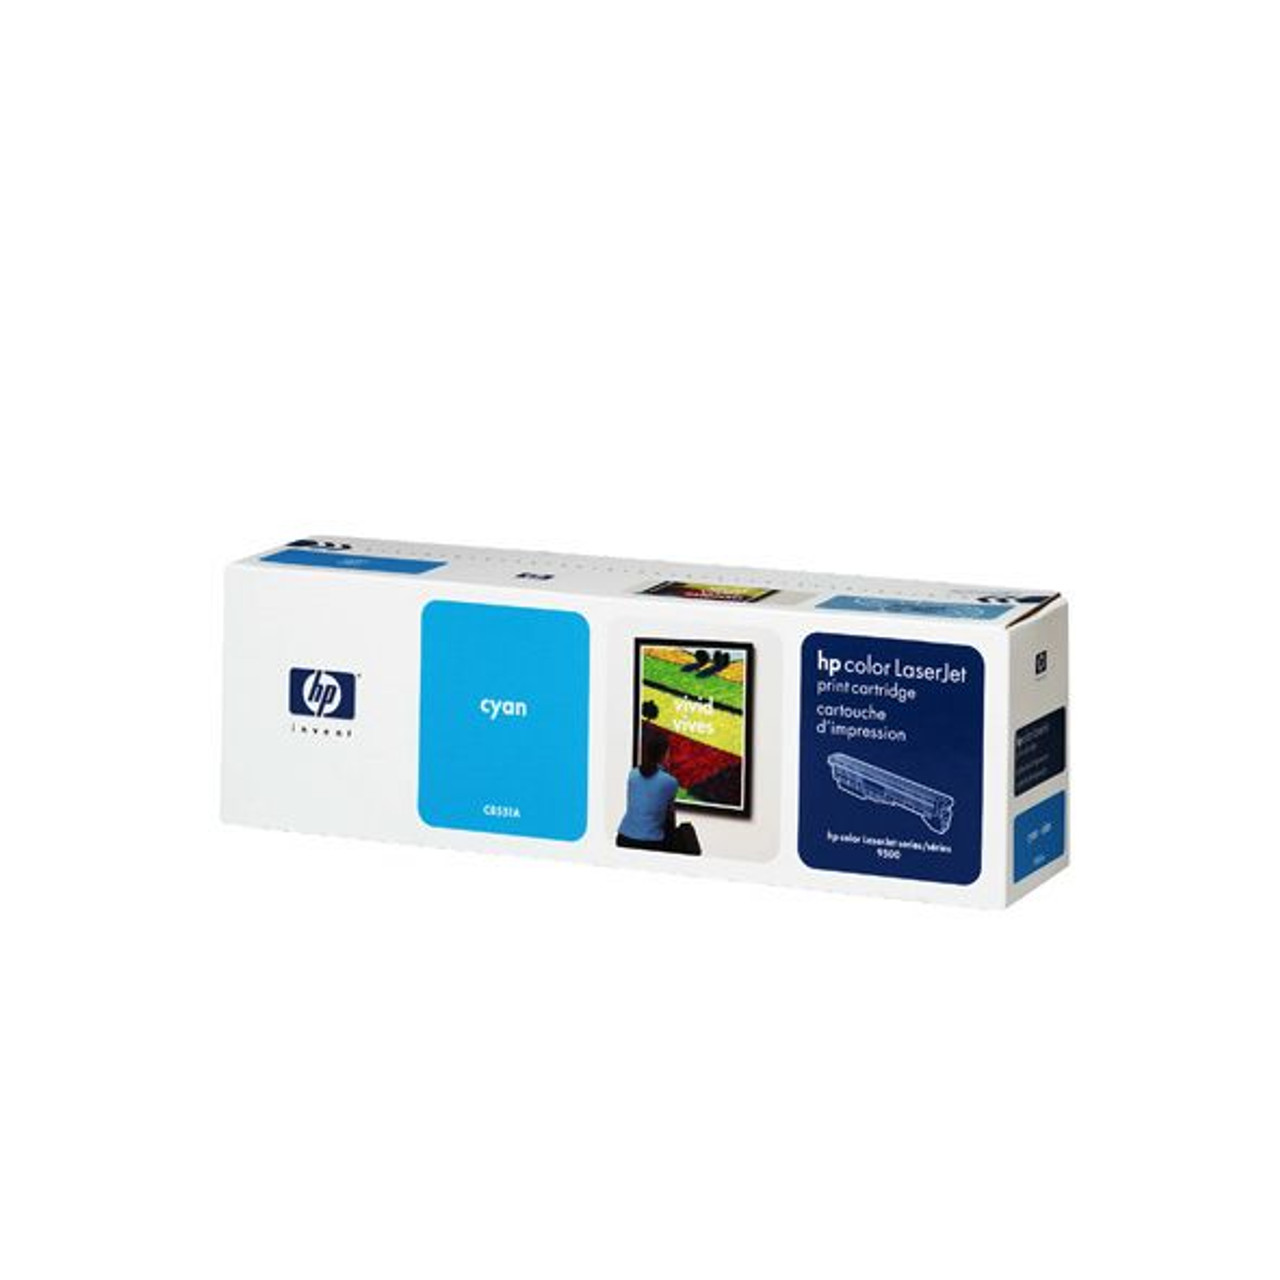 Image for HP Cyan Toner Cartridge 25K pages (C8551A) CX Computer Superstore